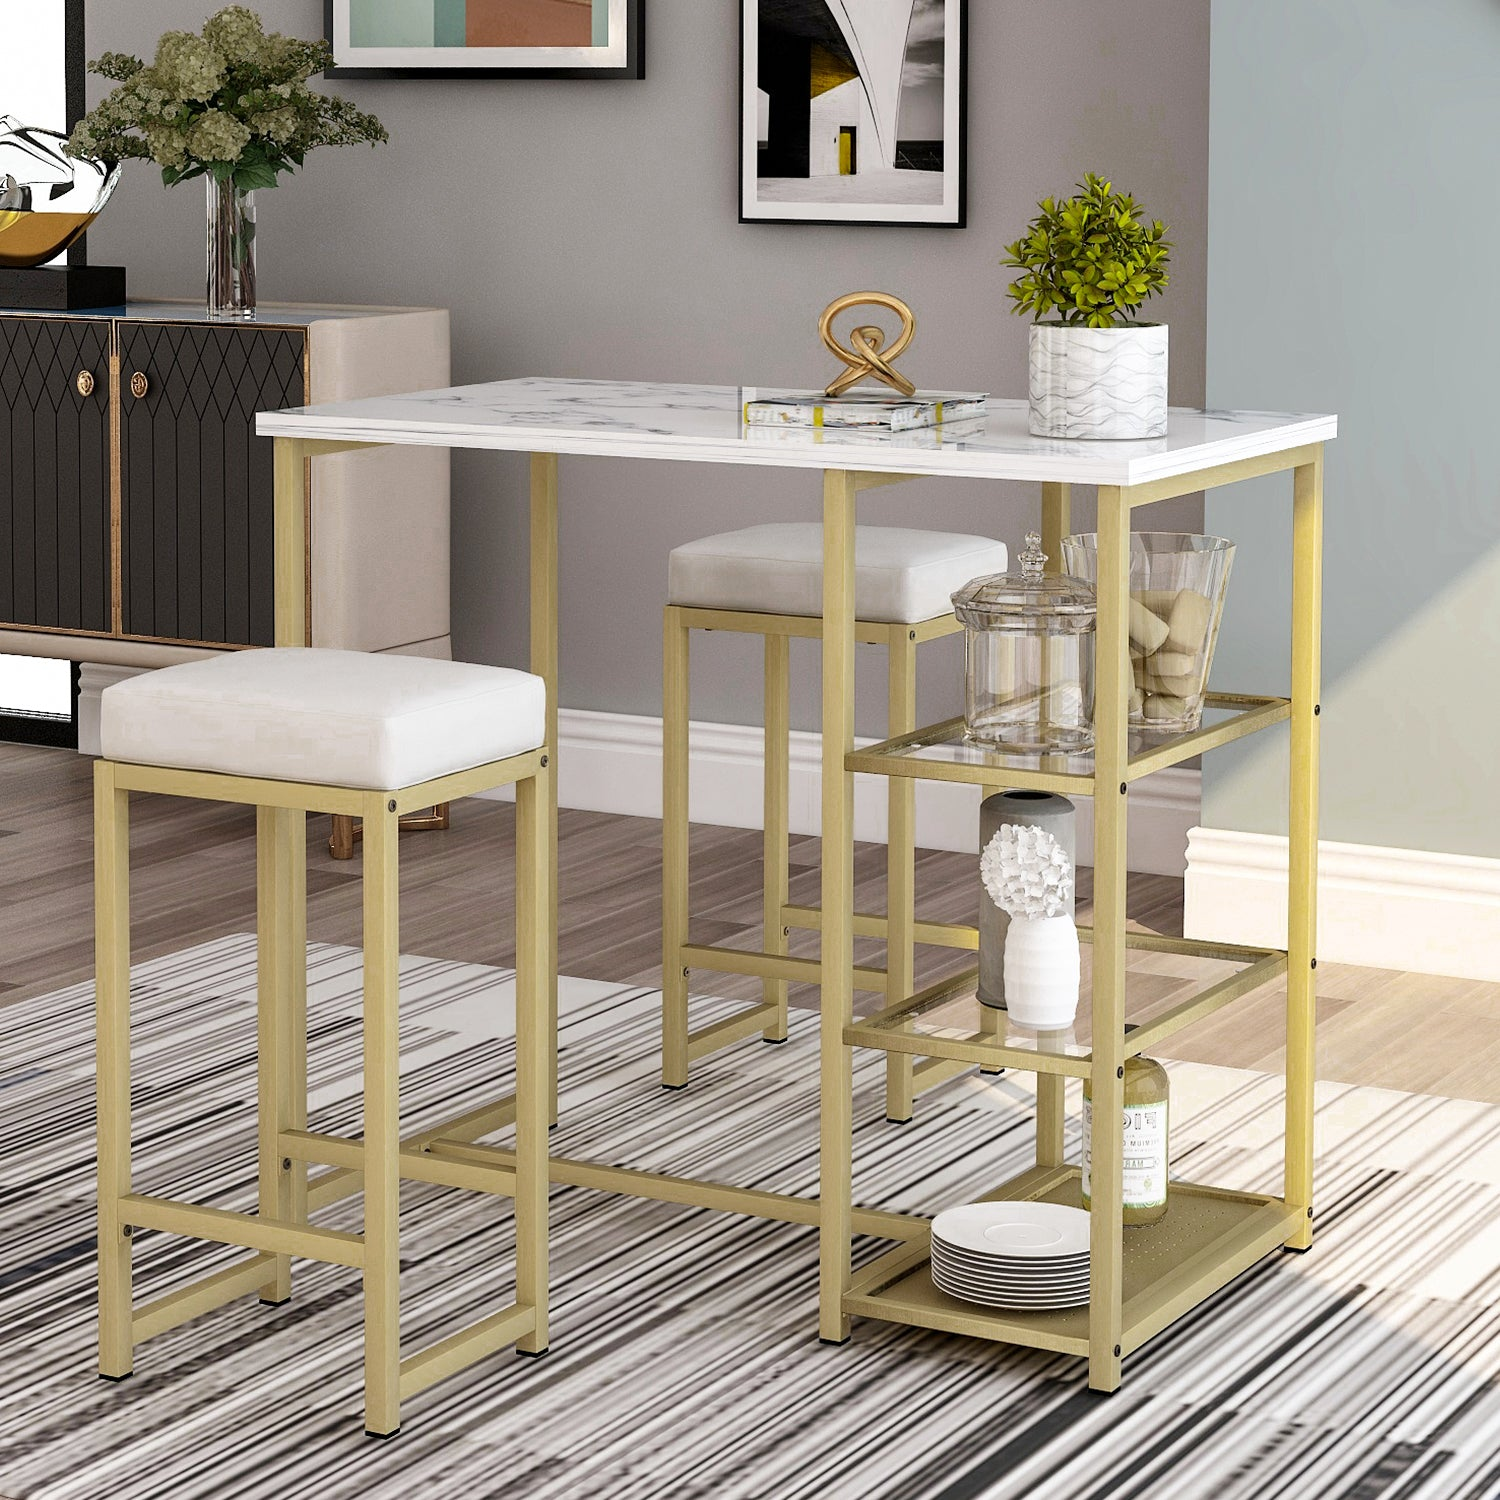 3 Counts - Modern Pub Set with Rectangular Table and Bar Stools - Gold